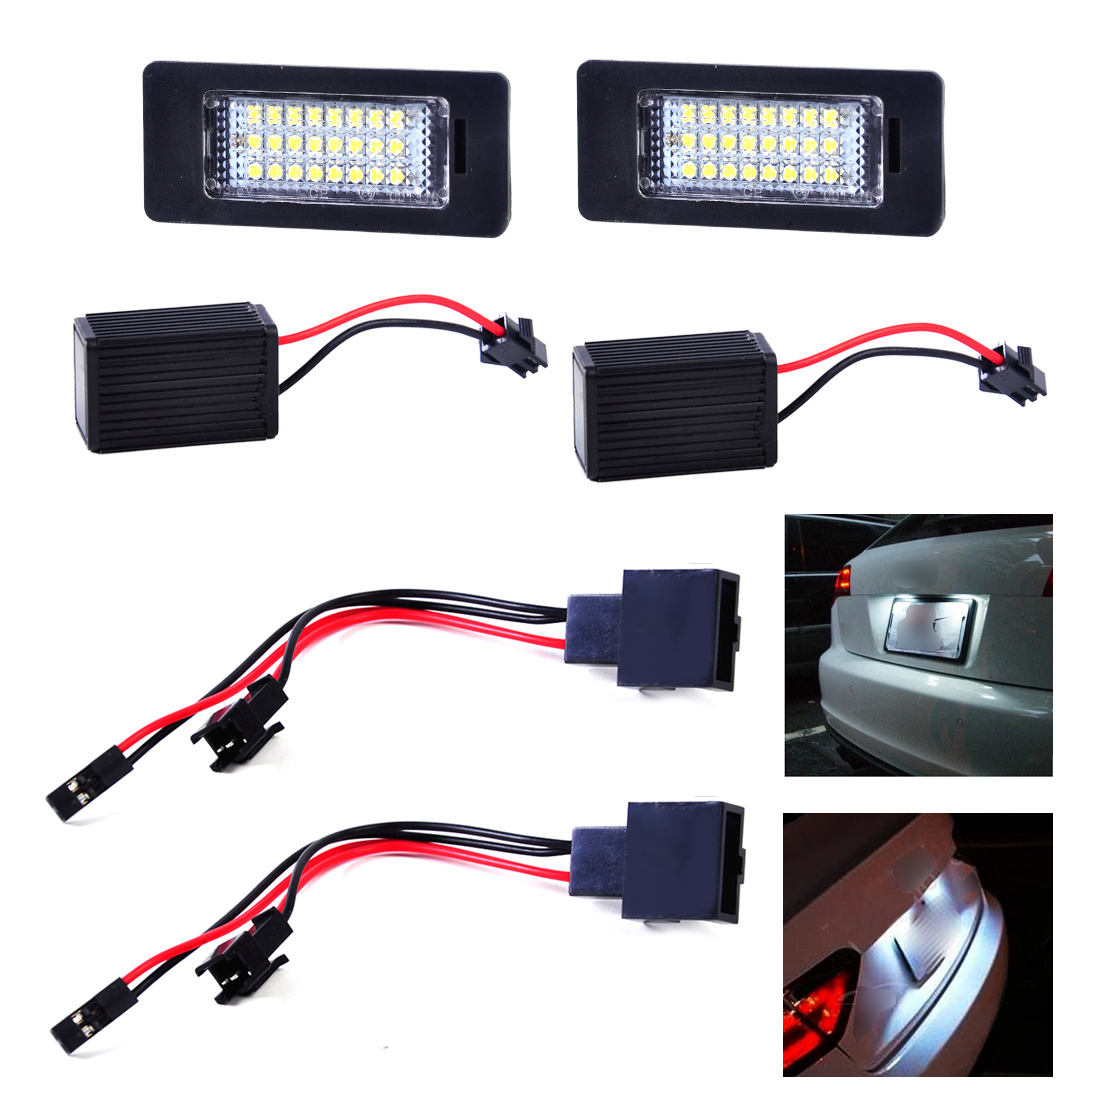 DWCX White Error Free 24 LED 6000K License Plate Light Lamp 8E0943021B 8E0943025B for Audi A4 A5 Q5 TT Quattro 2010 2011 2012 2x e marked obc error free 24 led white license number plate light lamp for bmw e81 e82 e90 e91 e92 e93 e60 e61 e39 x1 e84